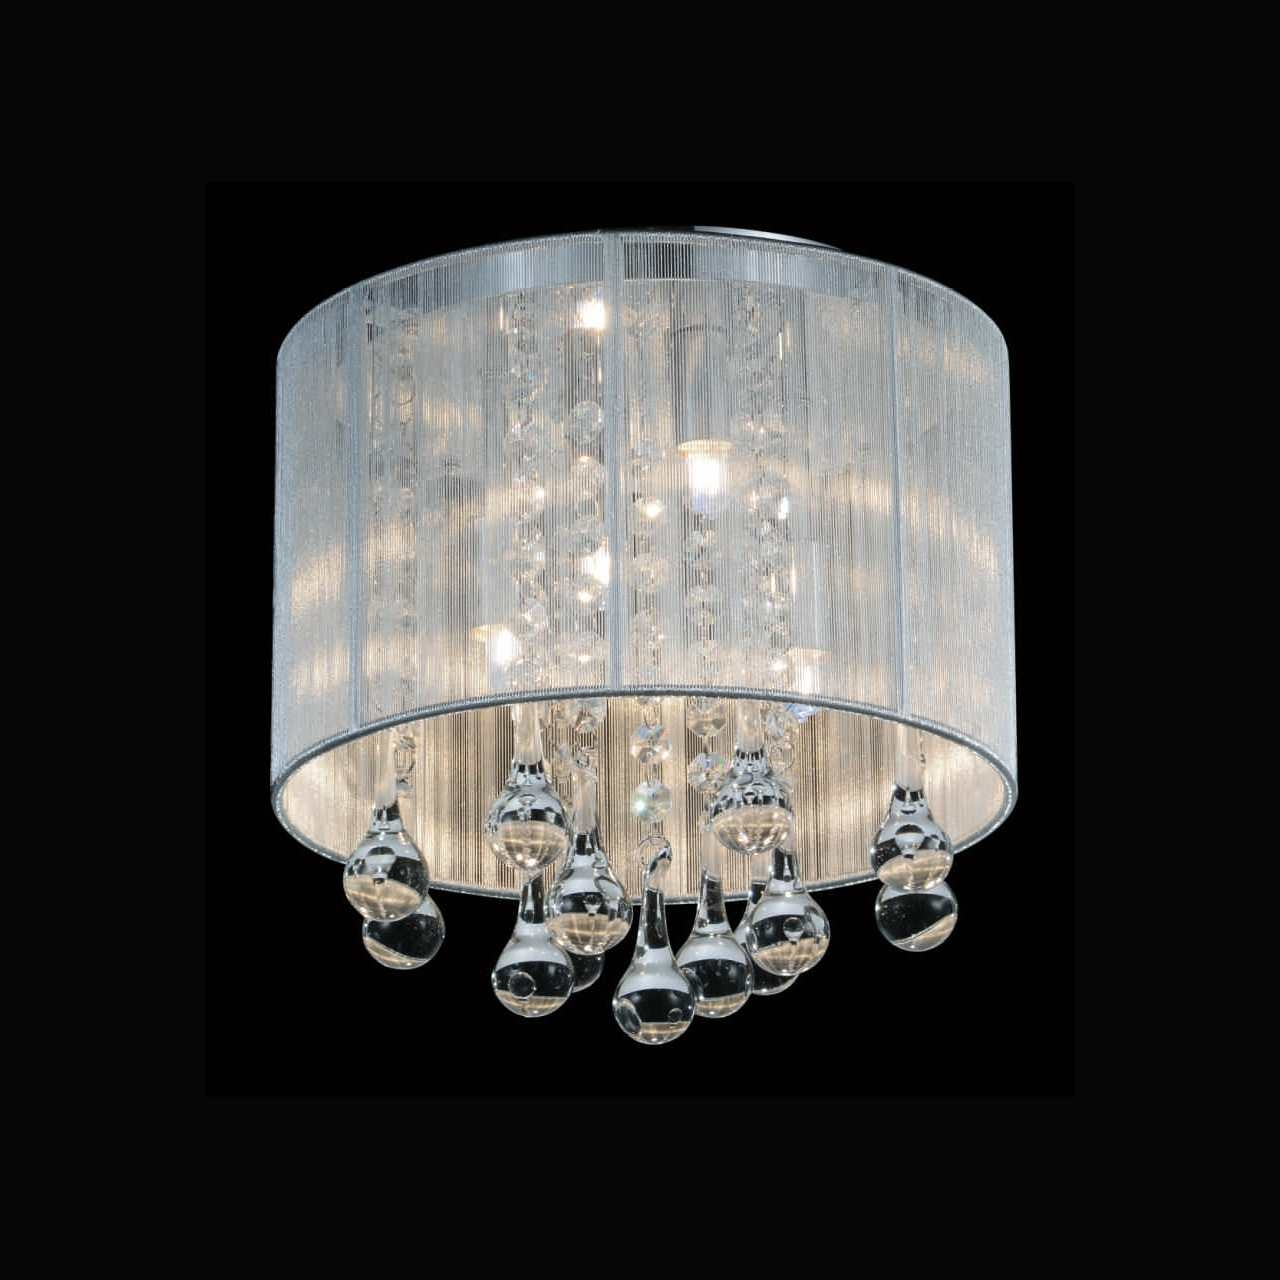 Brizzo Lighting Stores 10 Gocce Modern Crystal Round Flush Mount Regarding 4Light Chrome Crystal Chandeliers (View 17 of 25)